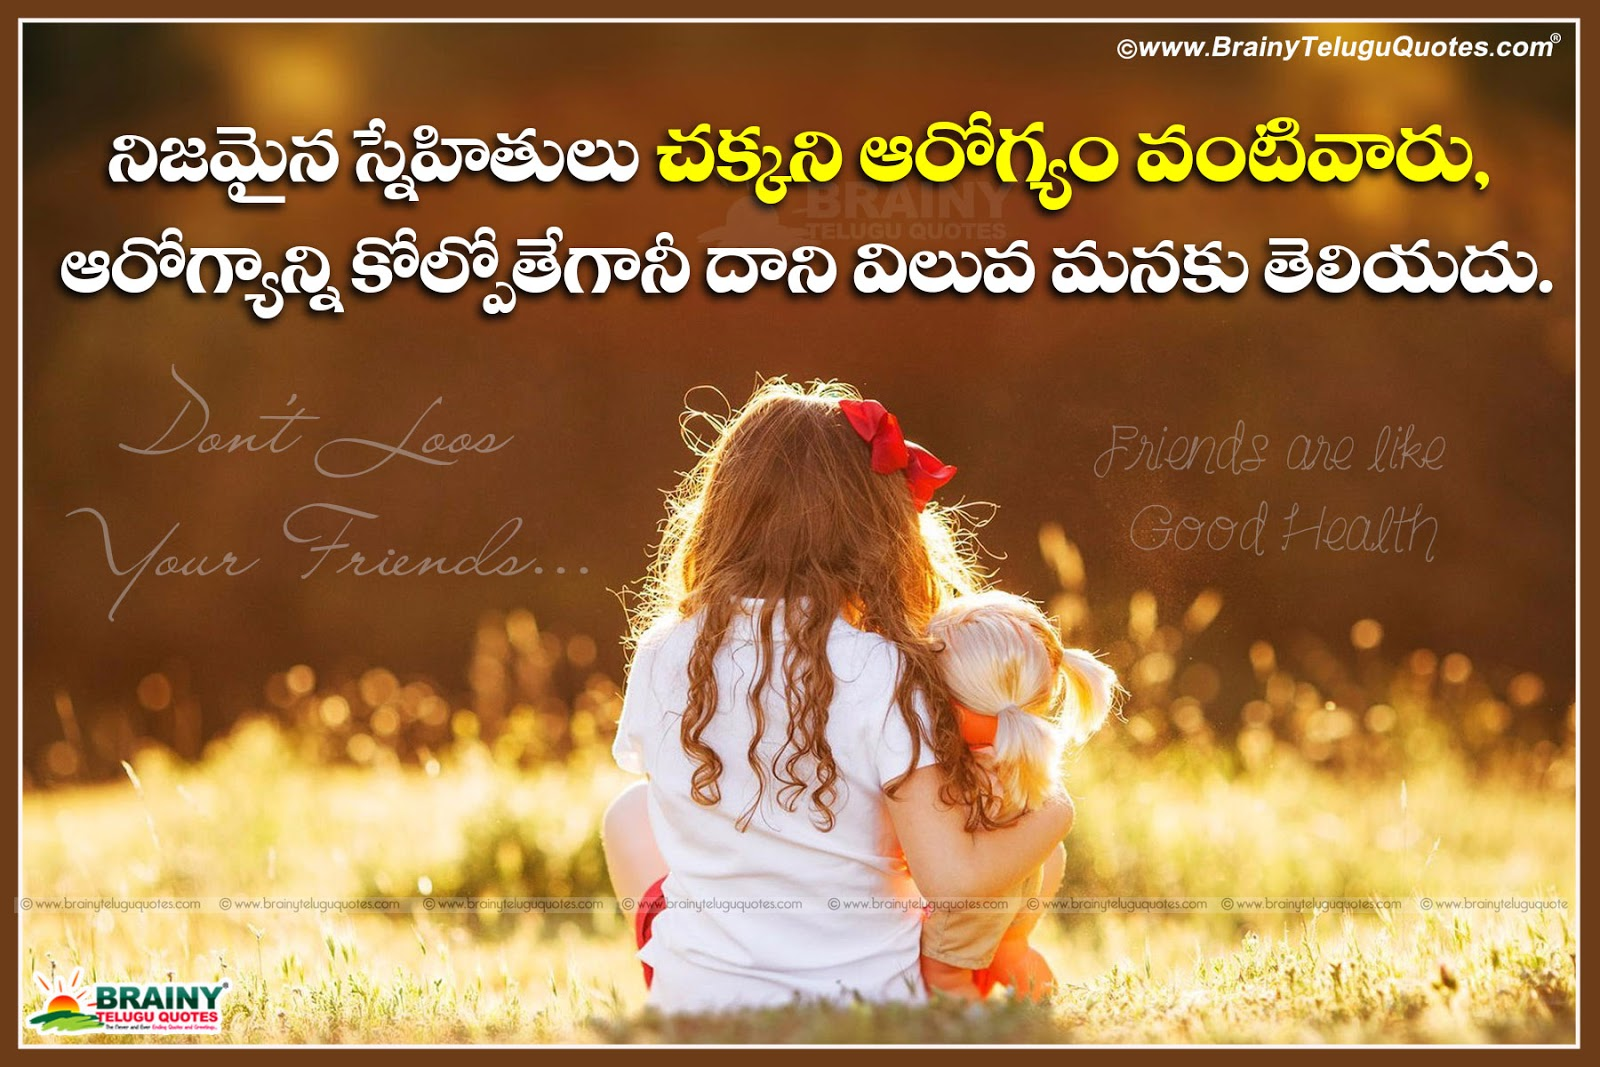 20 Top Telugu Good Morning Pictures And Ideas On Cbtb